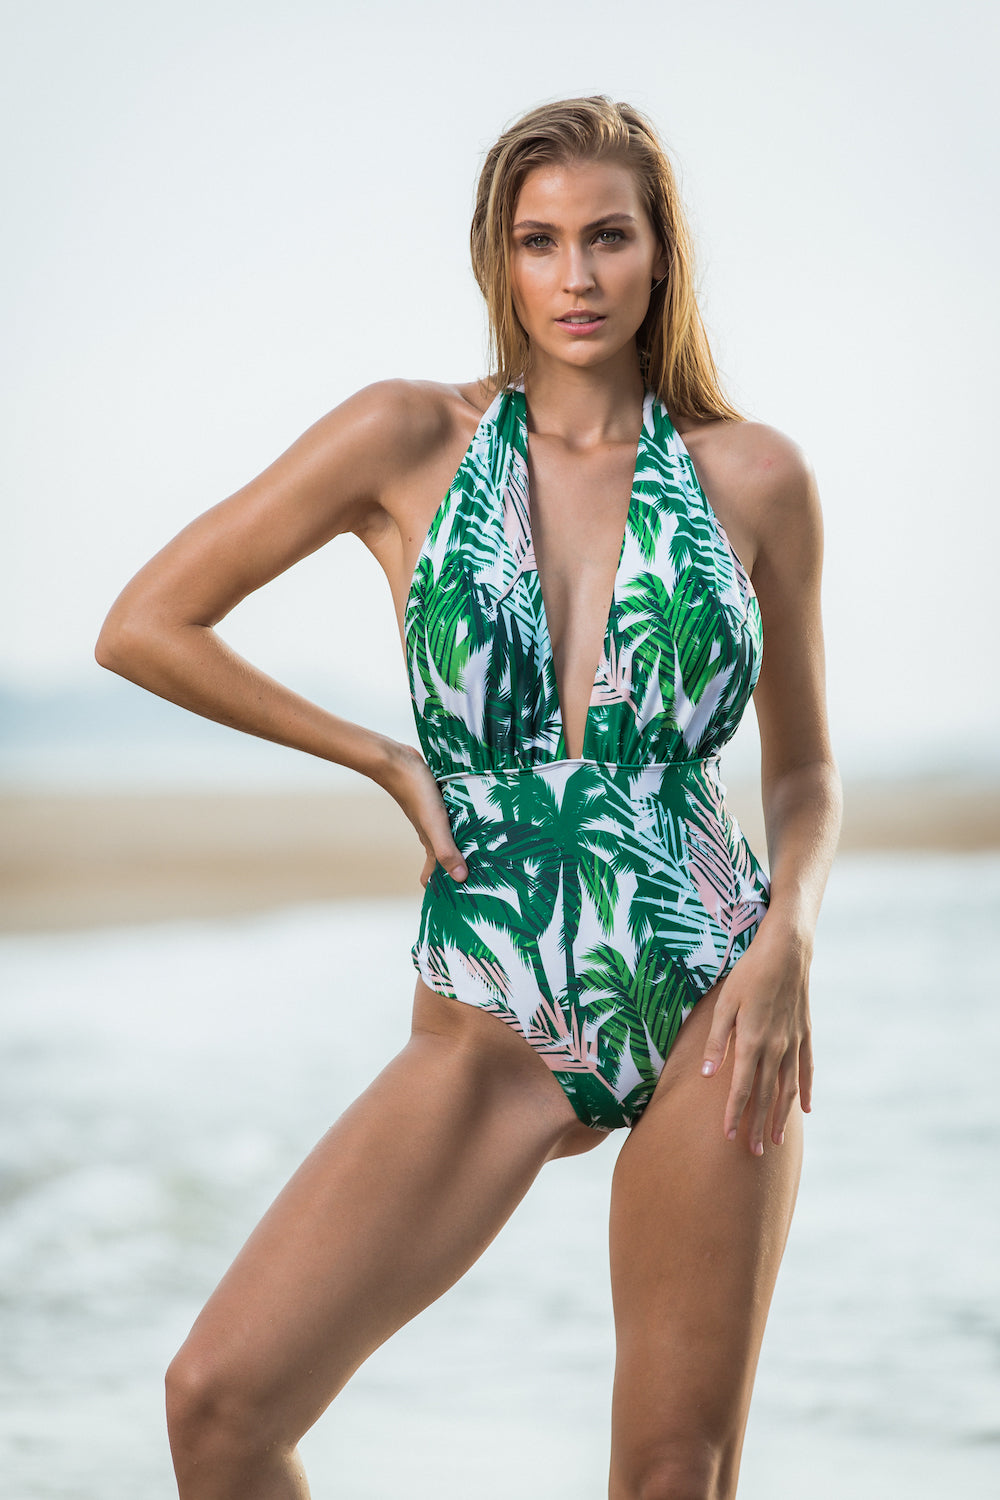 Golden Sands Bikini Swimwear from Melbourne Australia An online bikini brand. Tropical Goddess One Piece is in one piece collection, Australian design brand with a touch of tropical vibes. Best swimwear brand for 2019